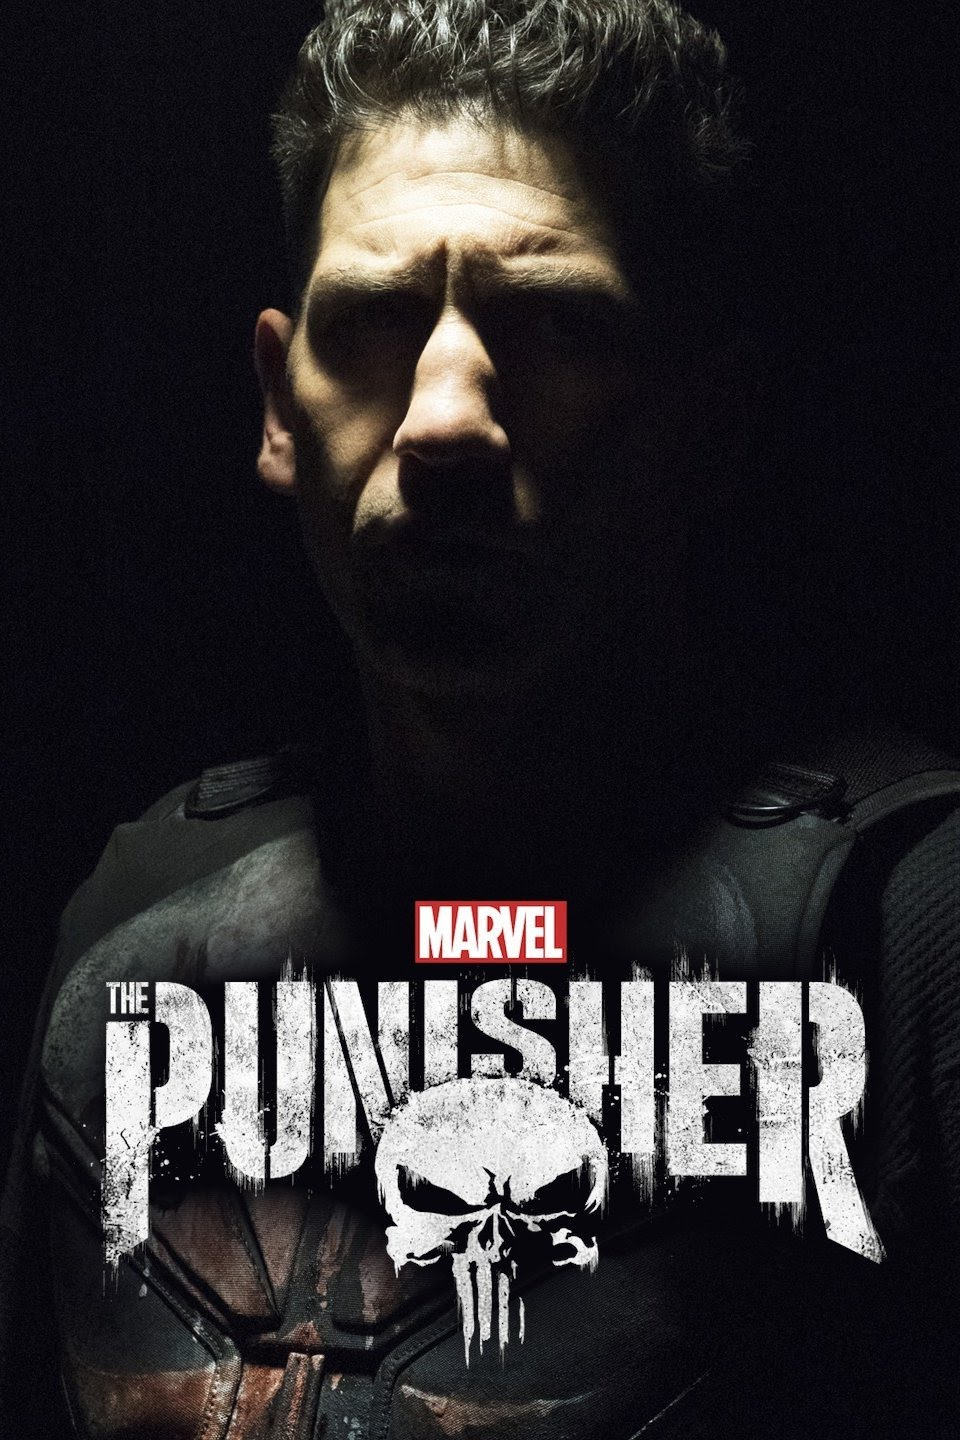 Marvel's The Punisher S01 E08 Cut